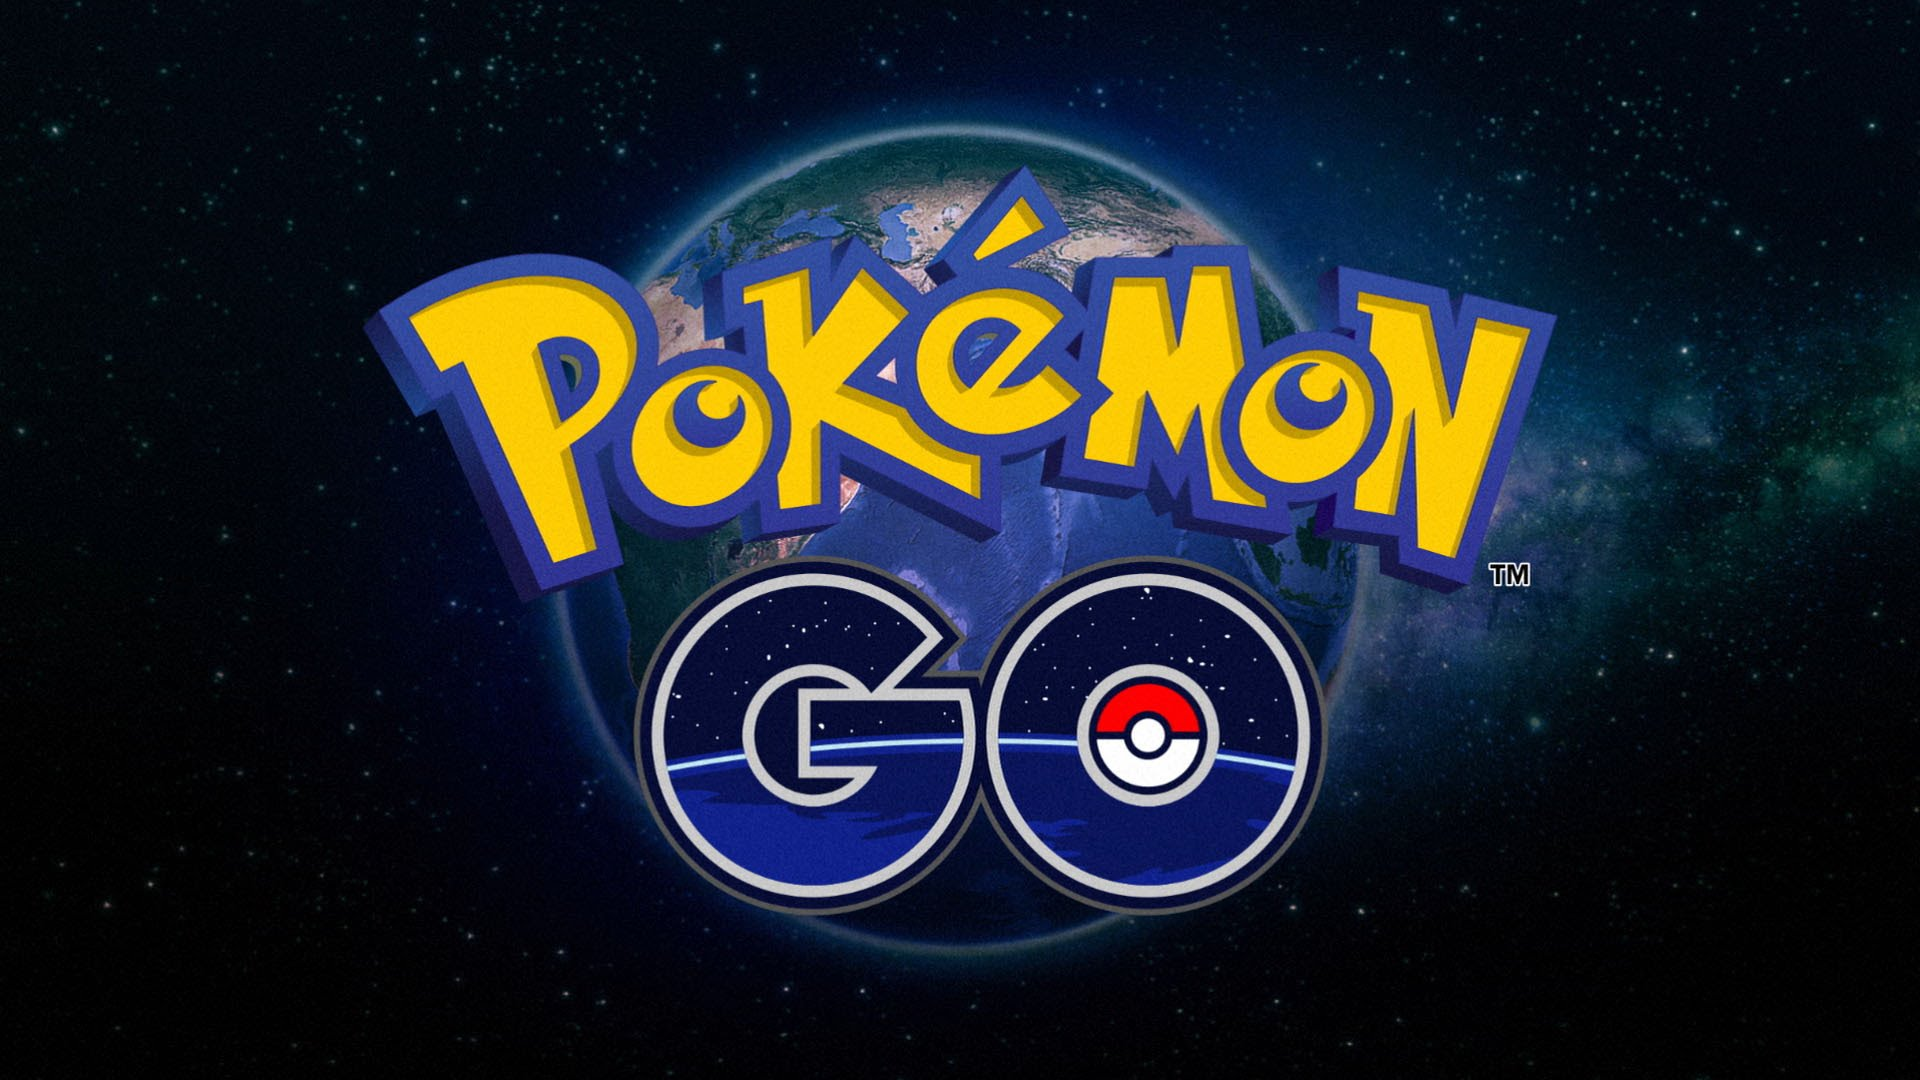 What Will the Future of Pokemon Go Look Like?